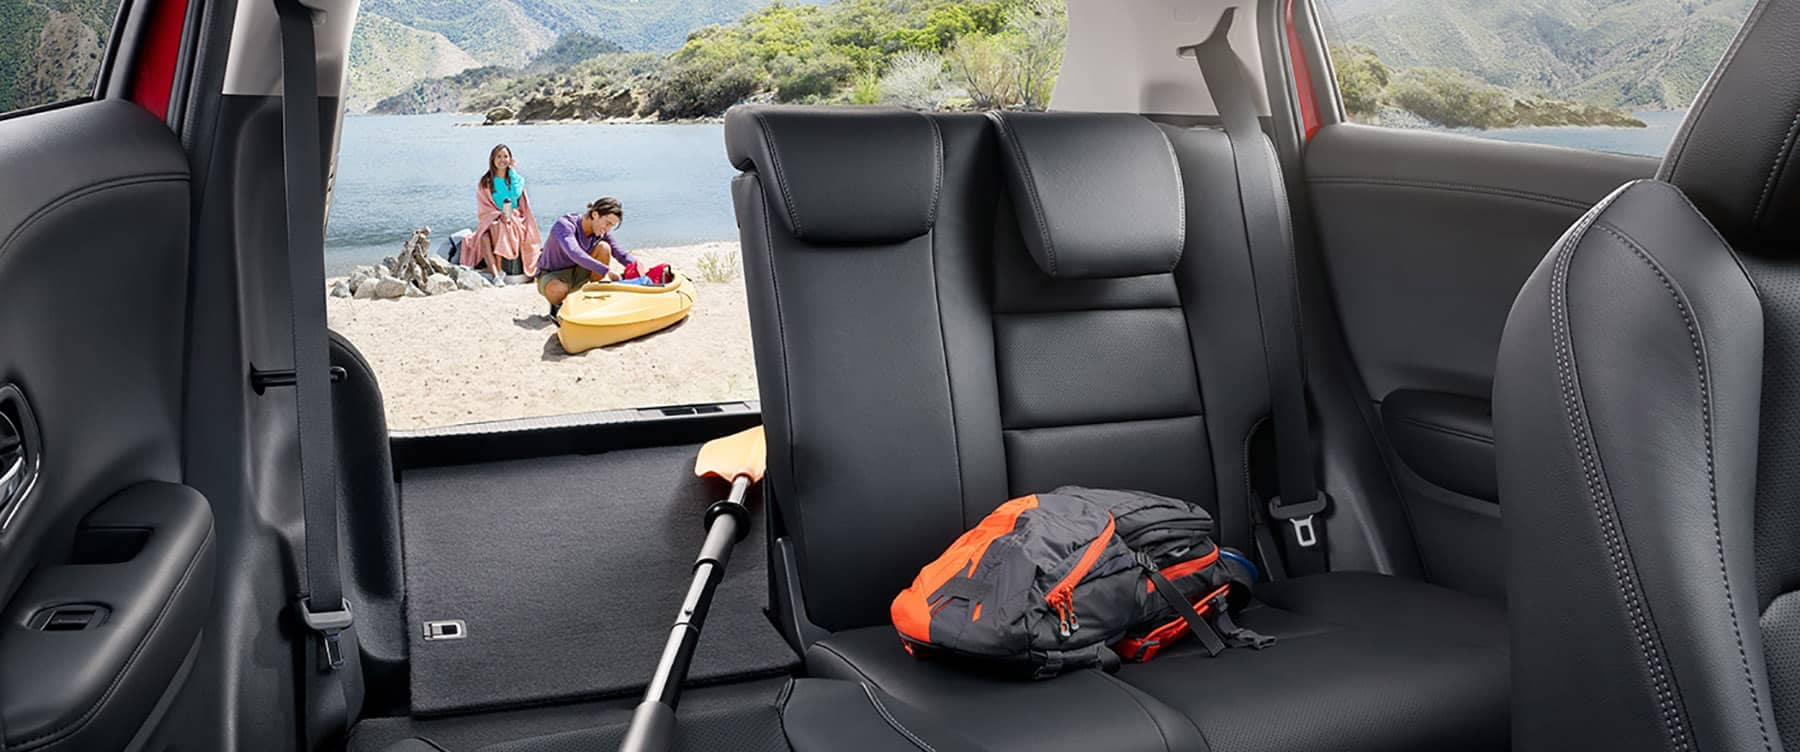 2019 Honda HR-V parked at beach with cargo area open